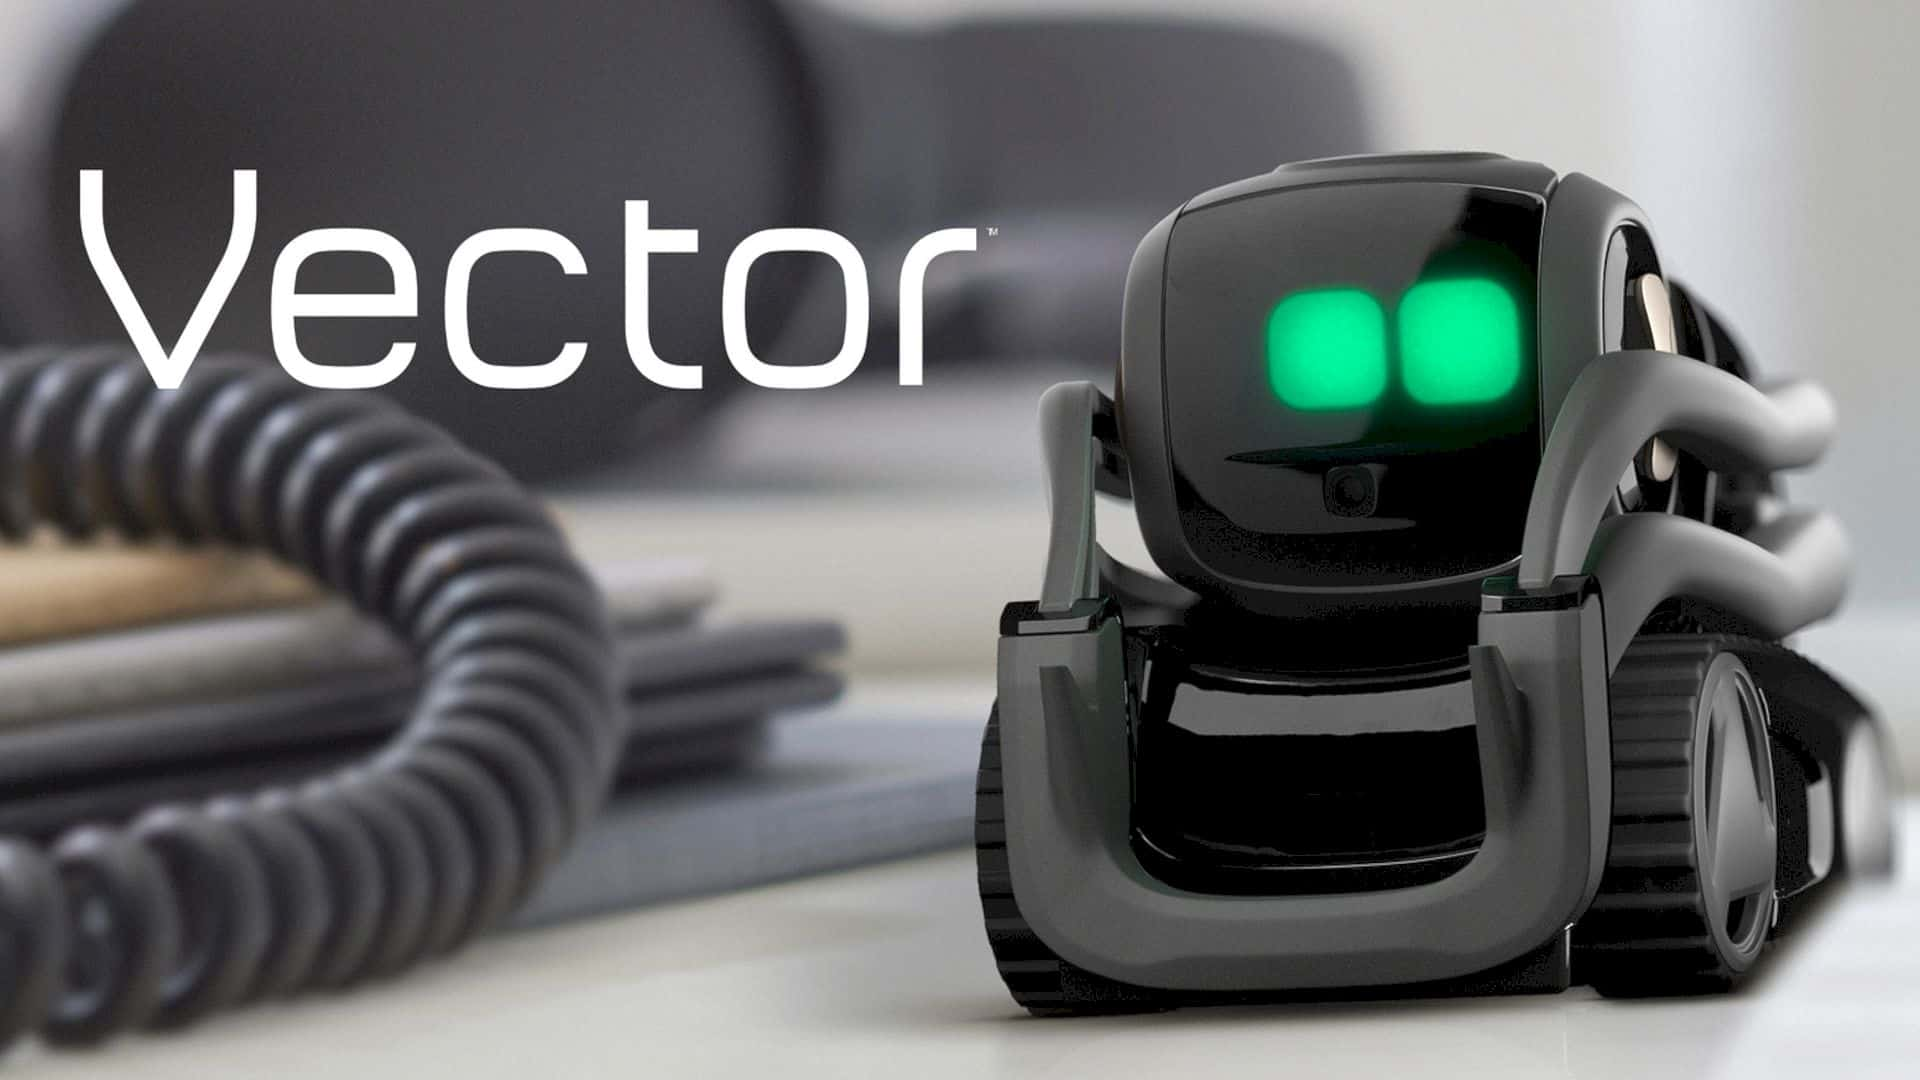 Vector: The Most Advanced Smart and Happy Home Robot Ever